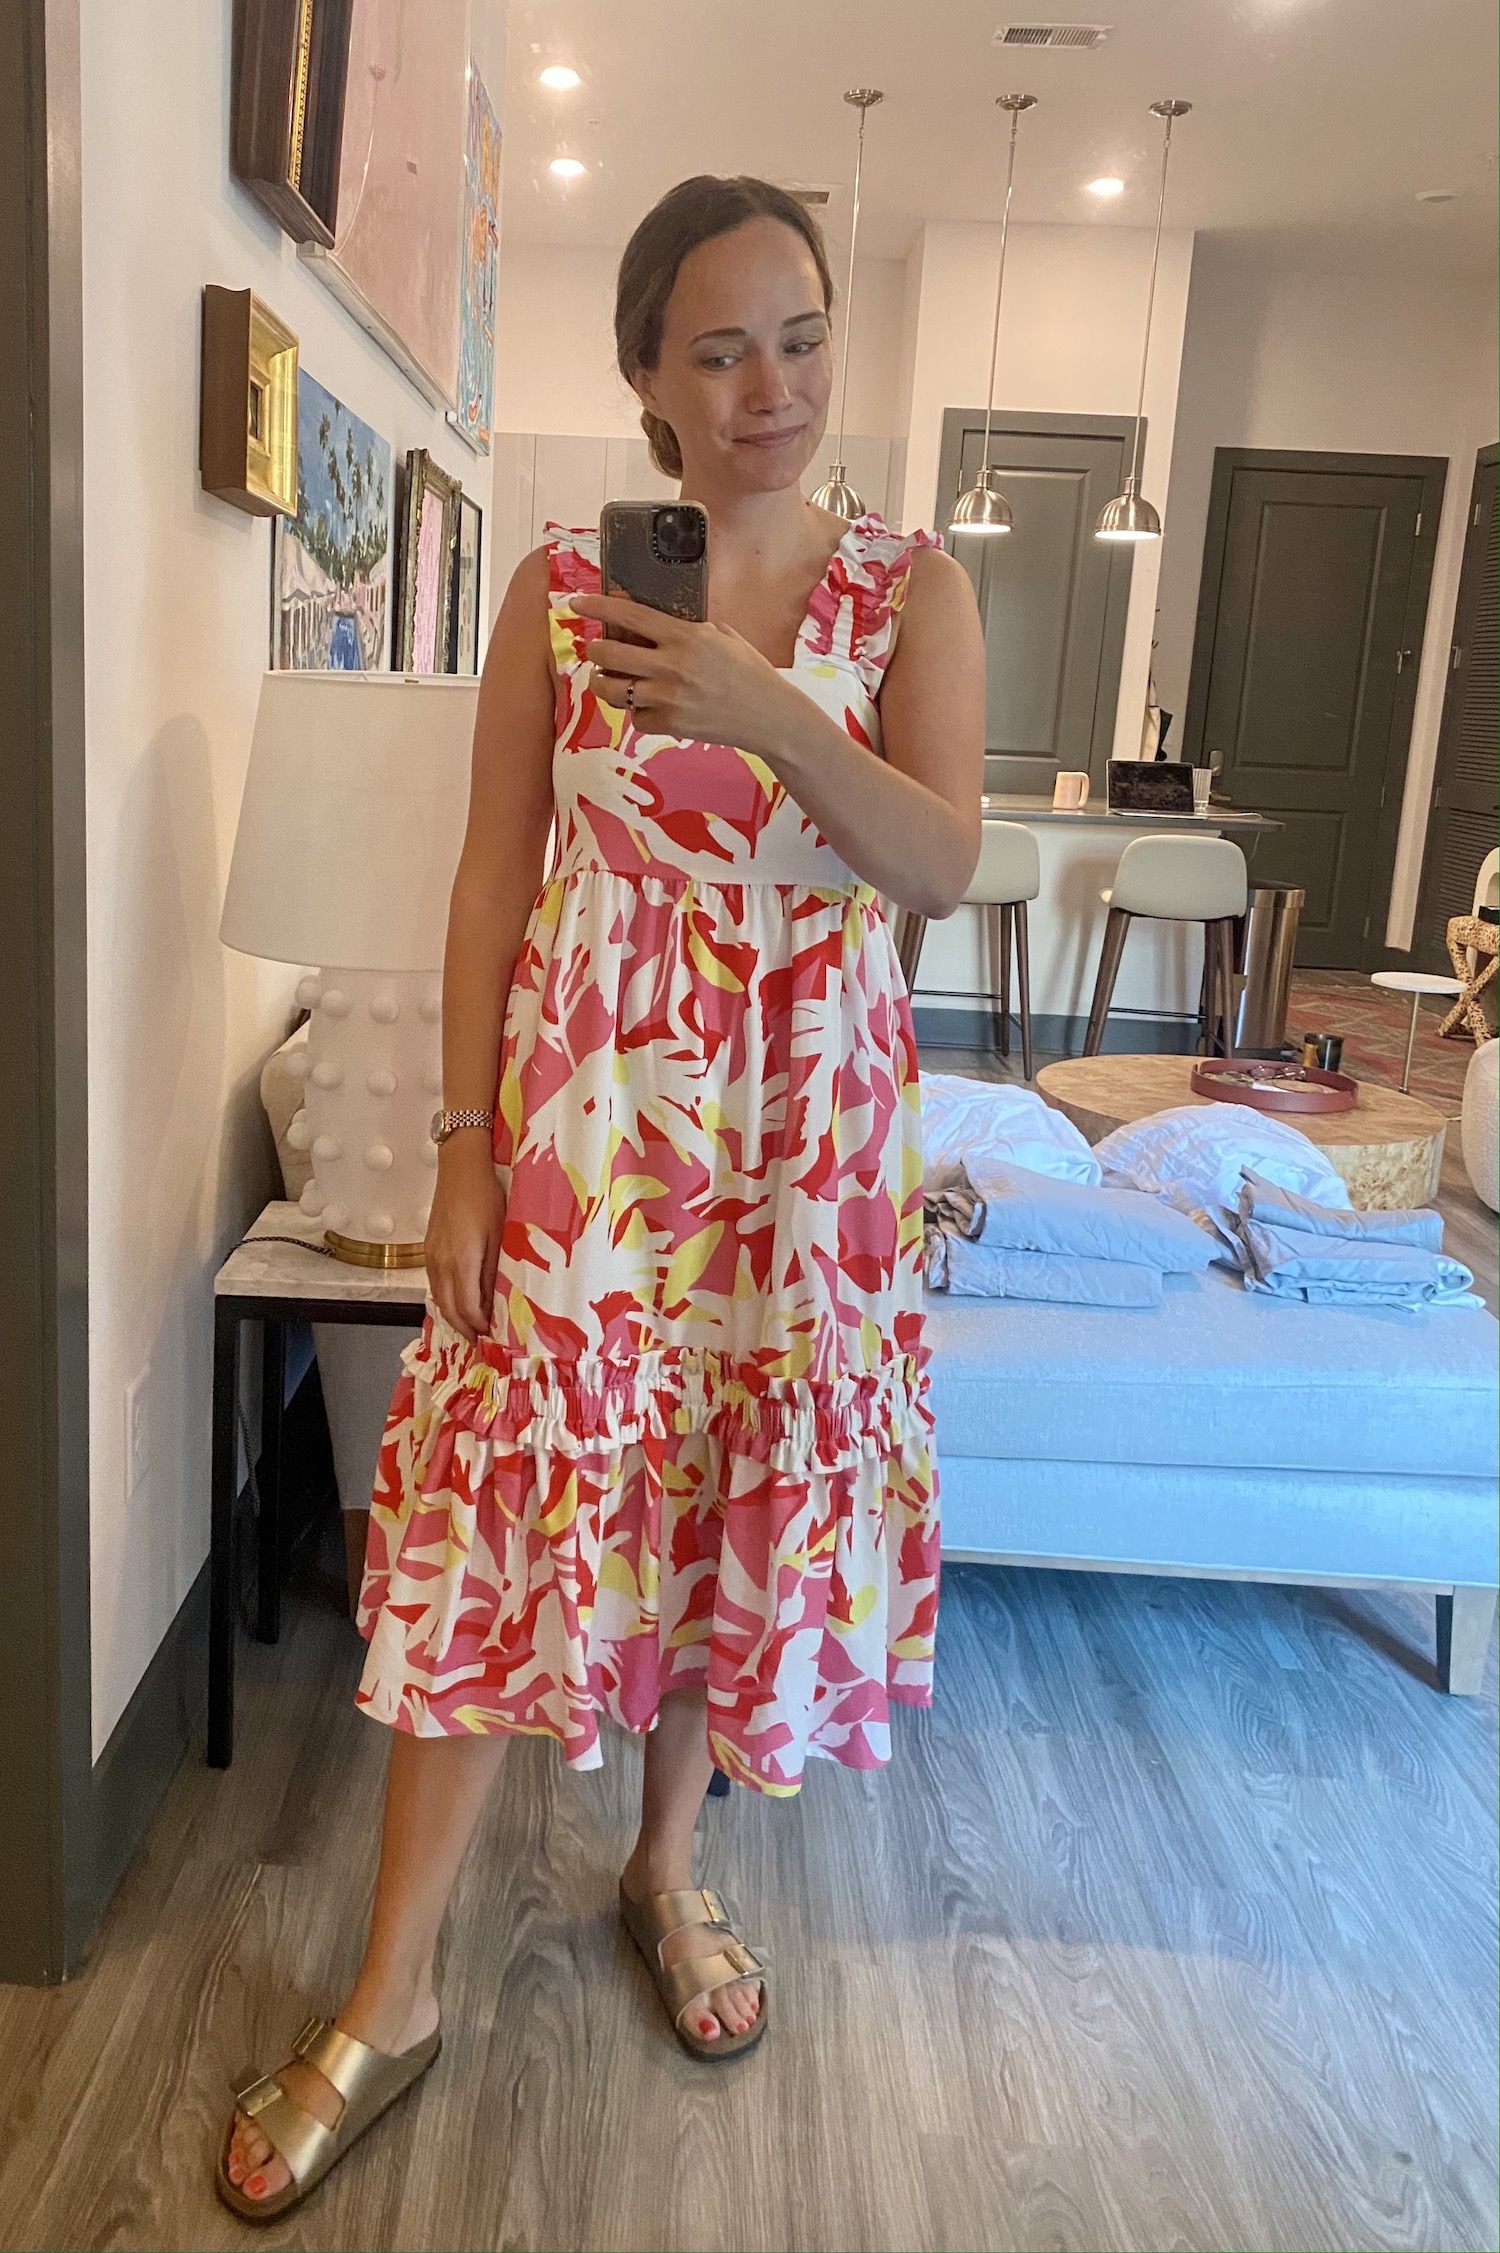 Crosby by Molly Burch Dress | Last Week in Outfits 6.28.21